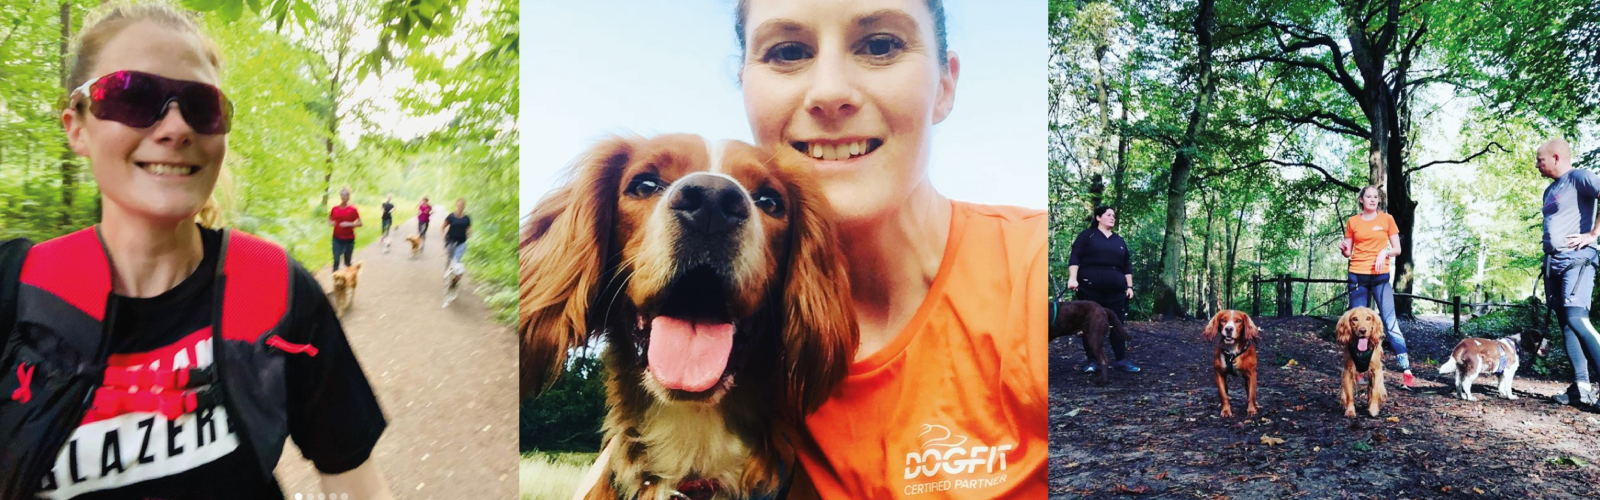 DogFit Certified Canicross Coach